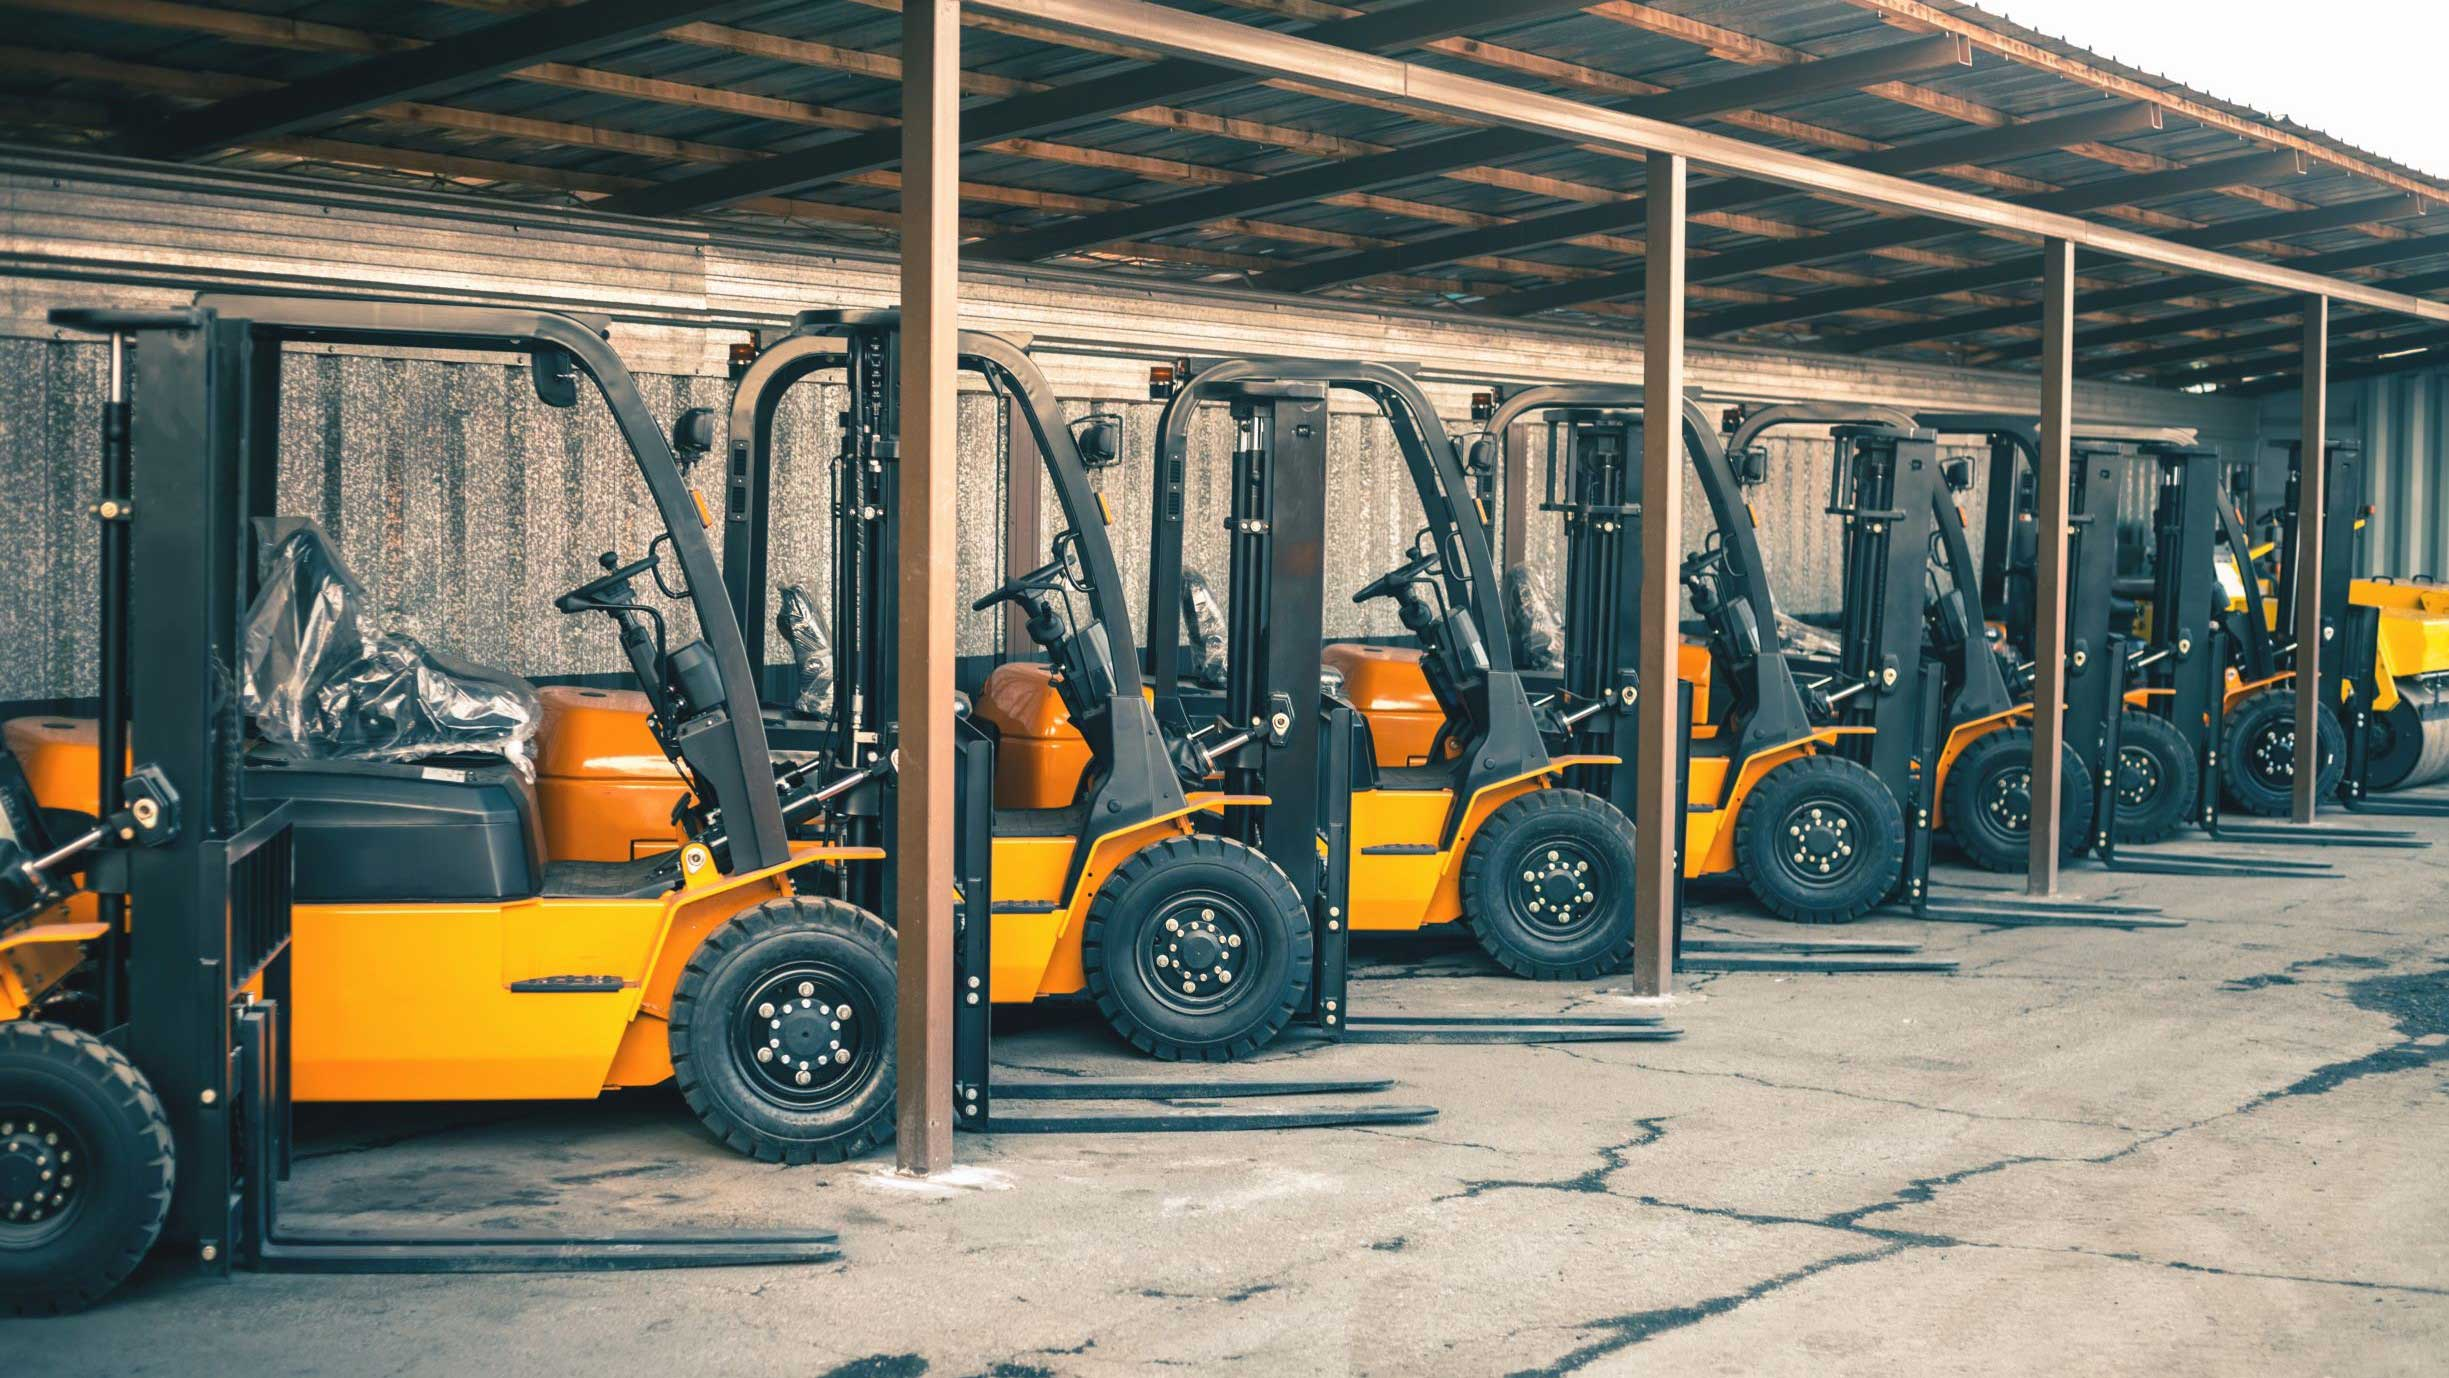 Production Pause: Toyota Suspends Shipment of Some Forklifts